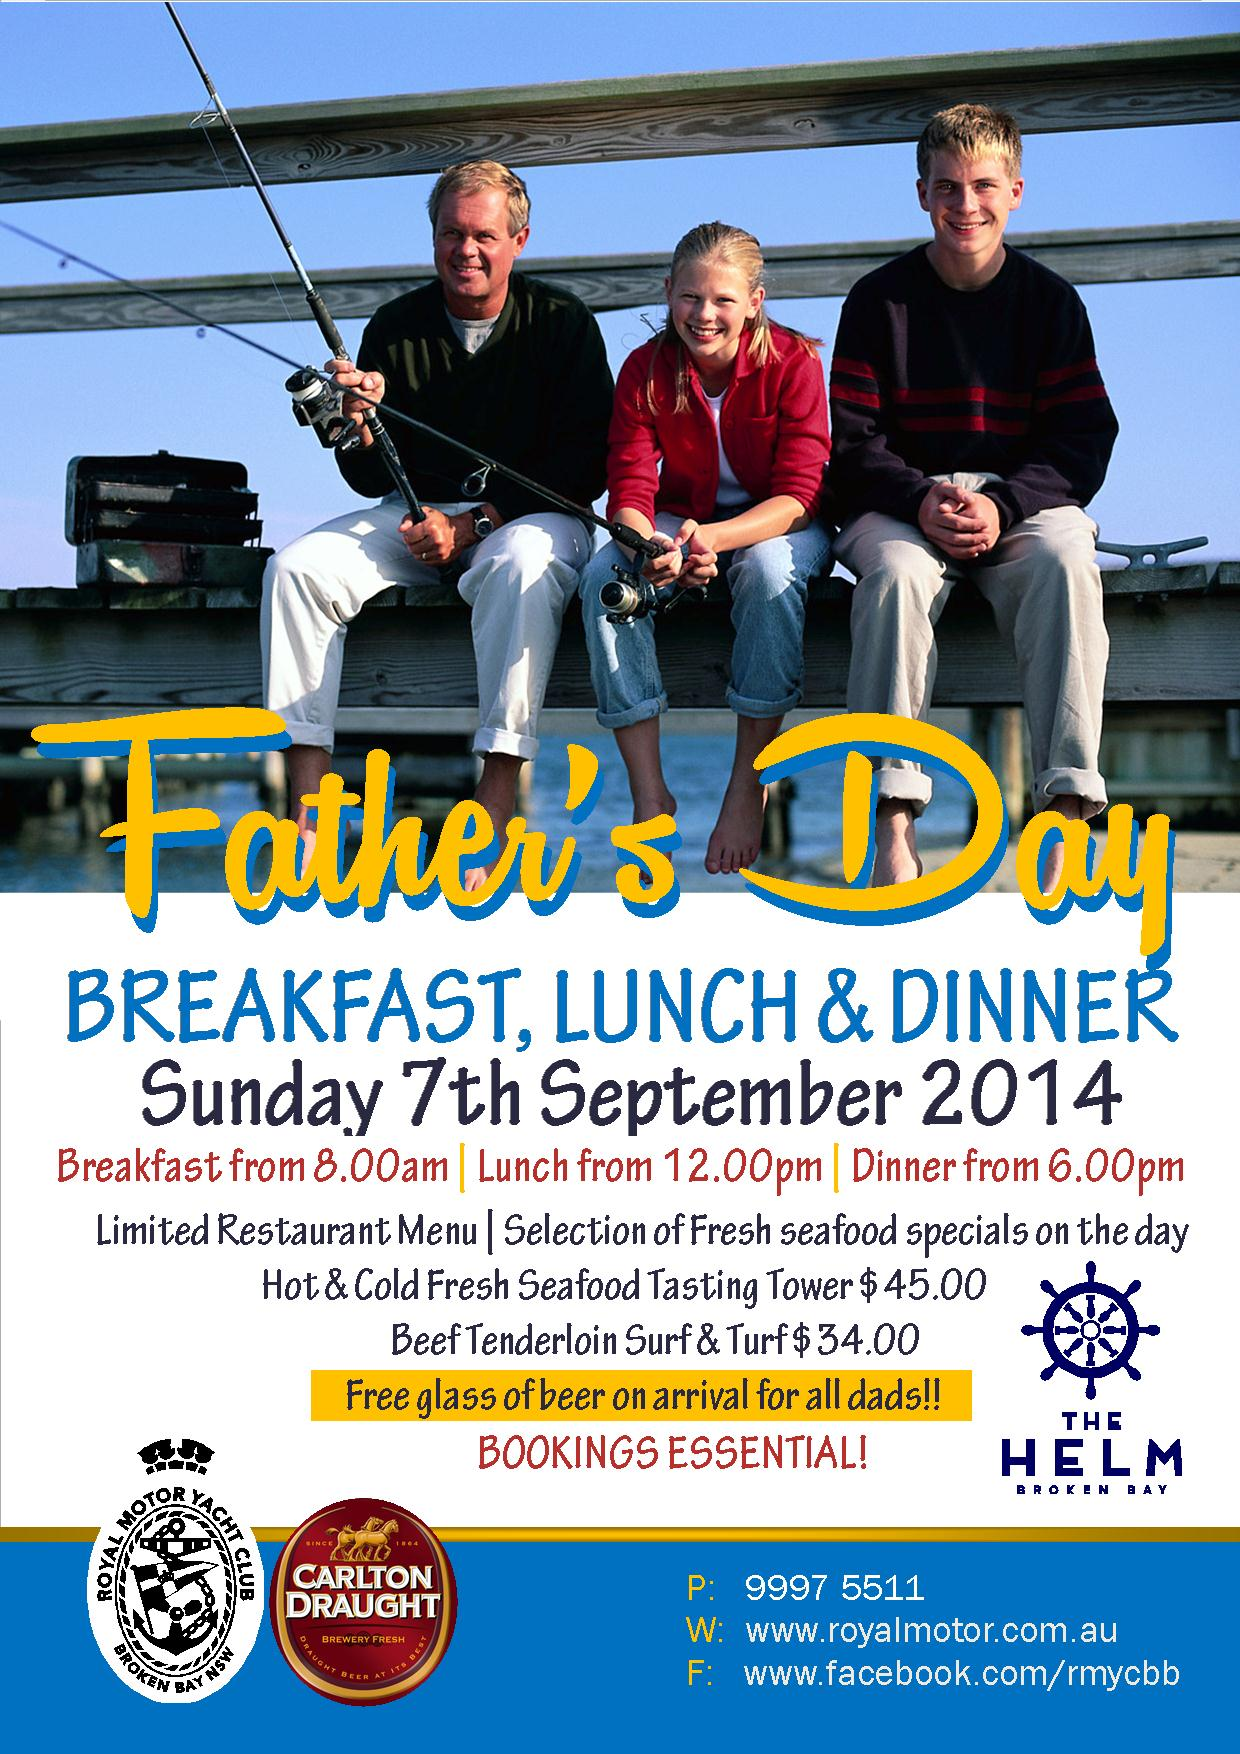 Fathers Day Flyer 2014 A4